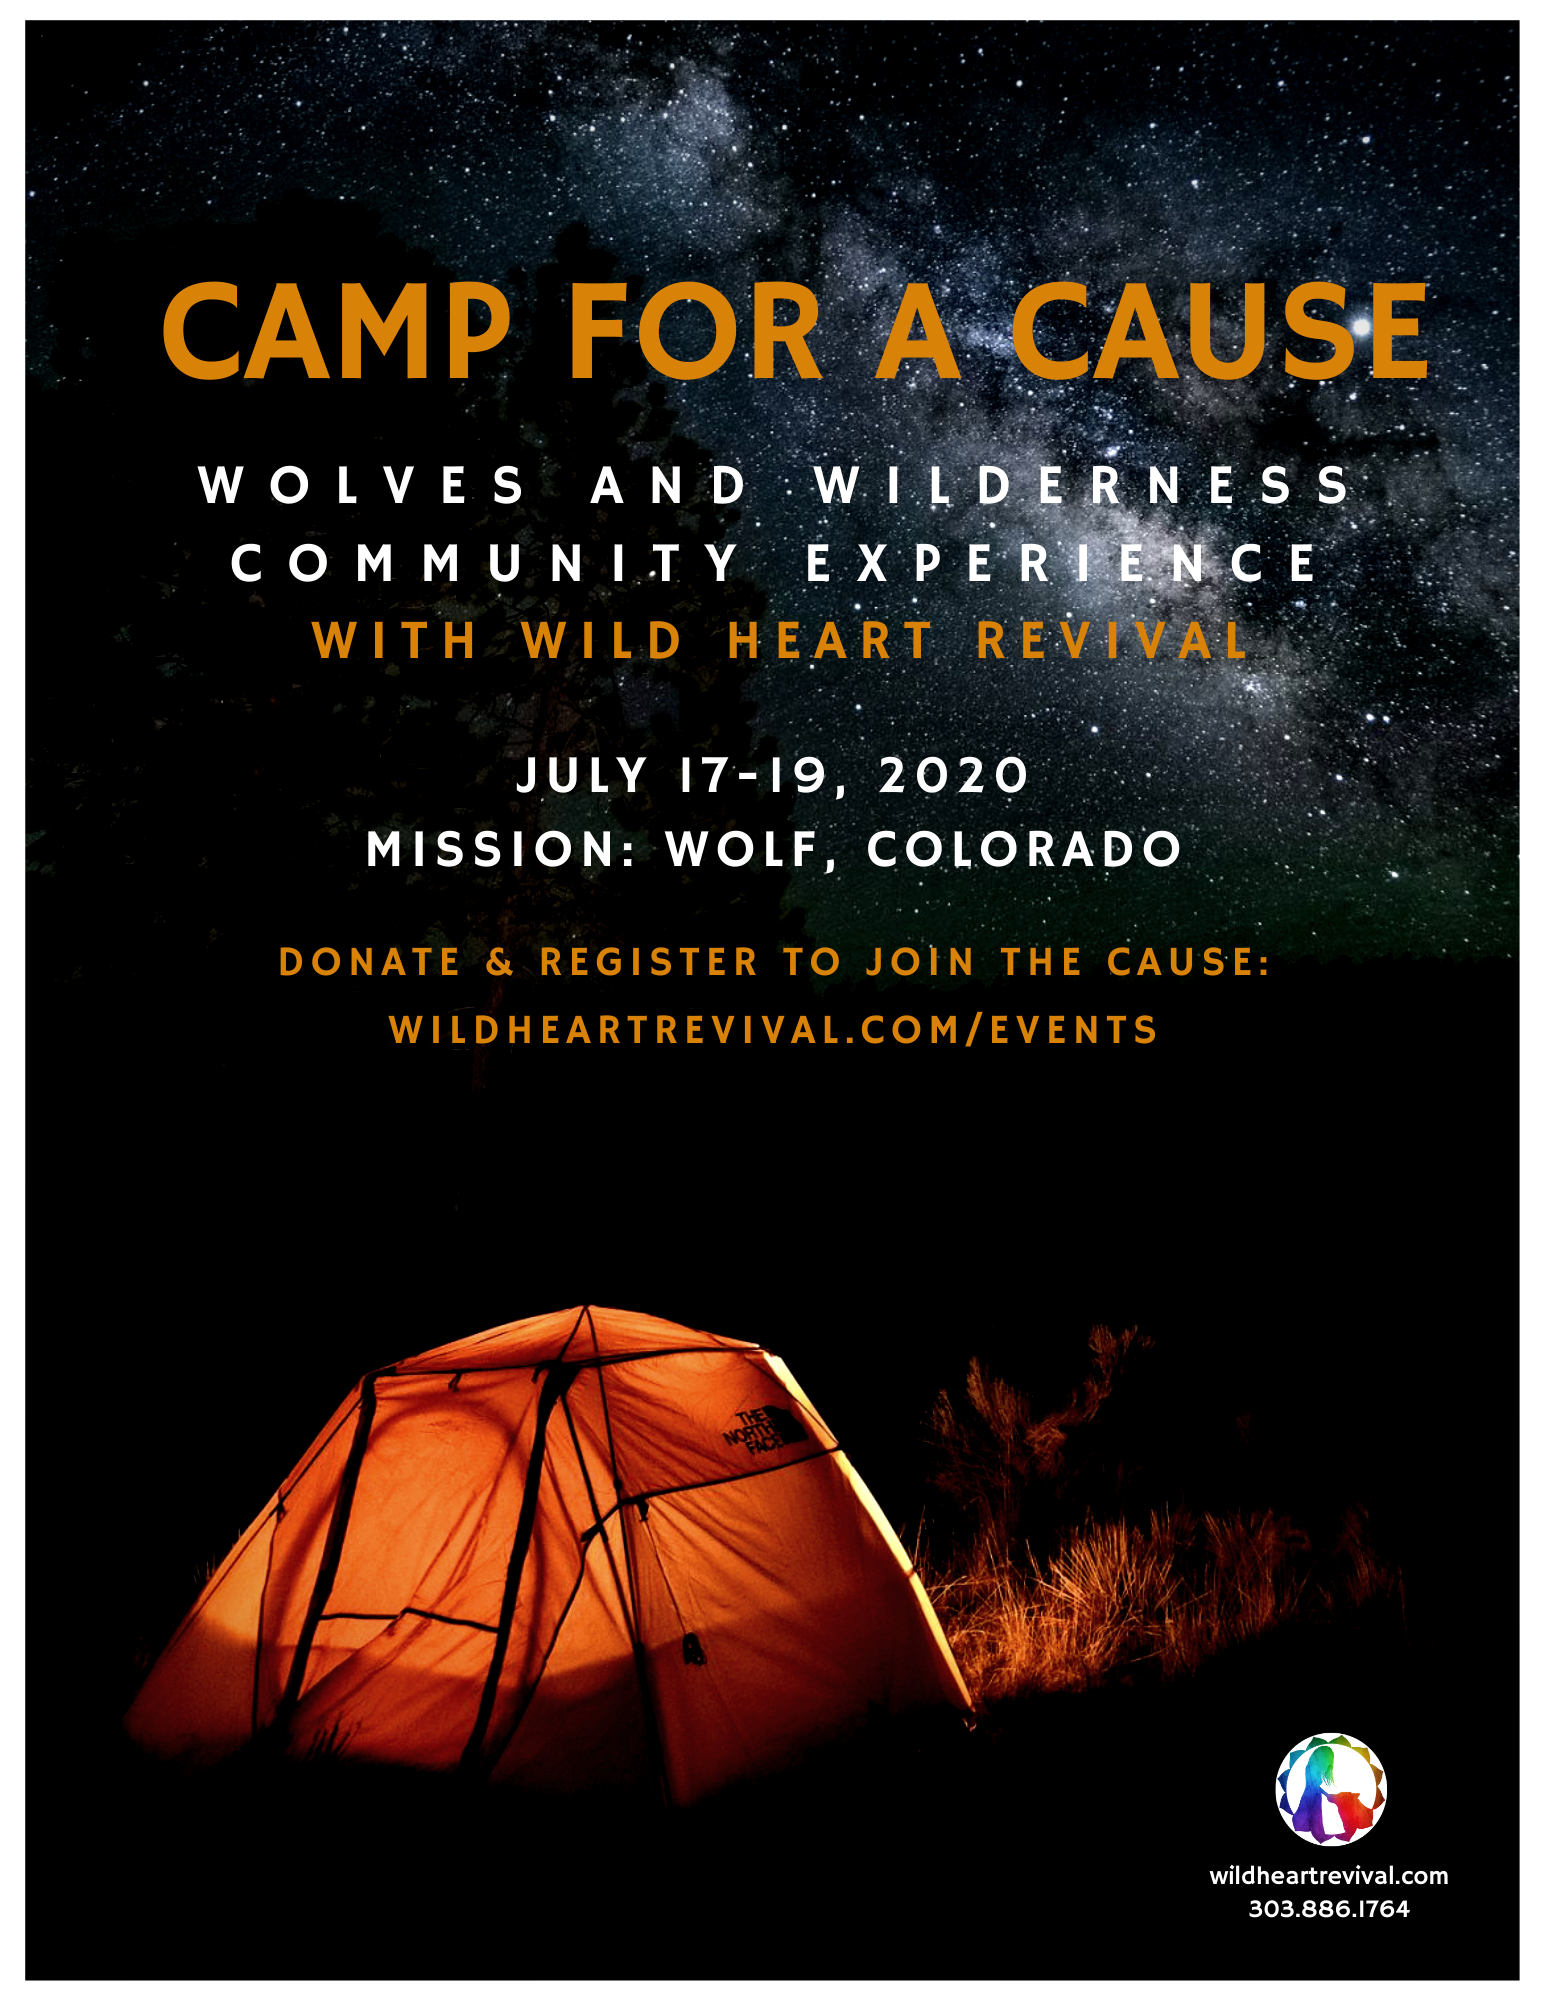 CAMP FOR A CAUSE MW JULY